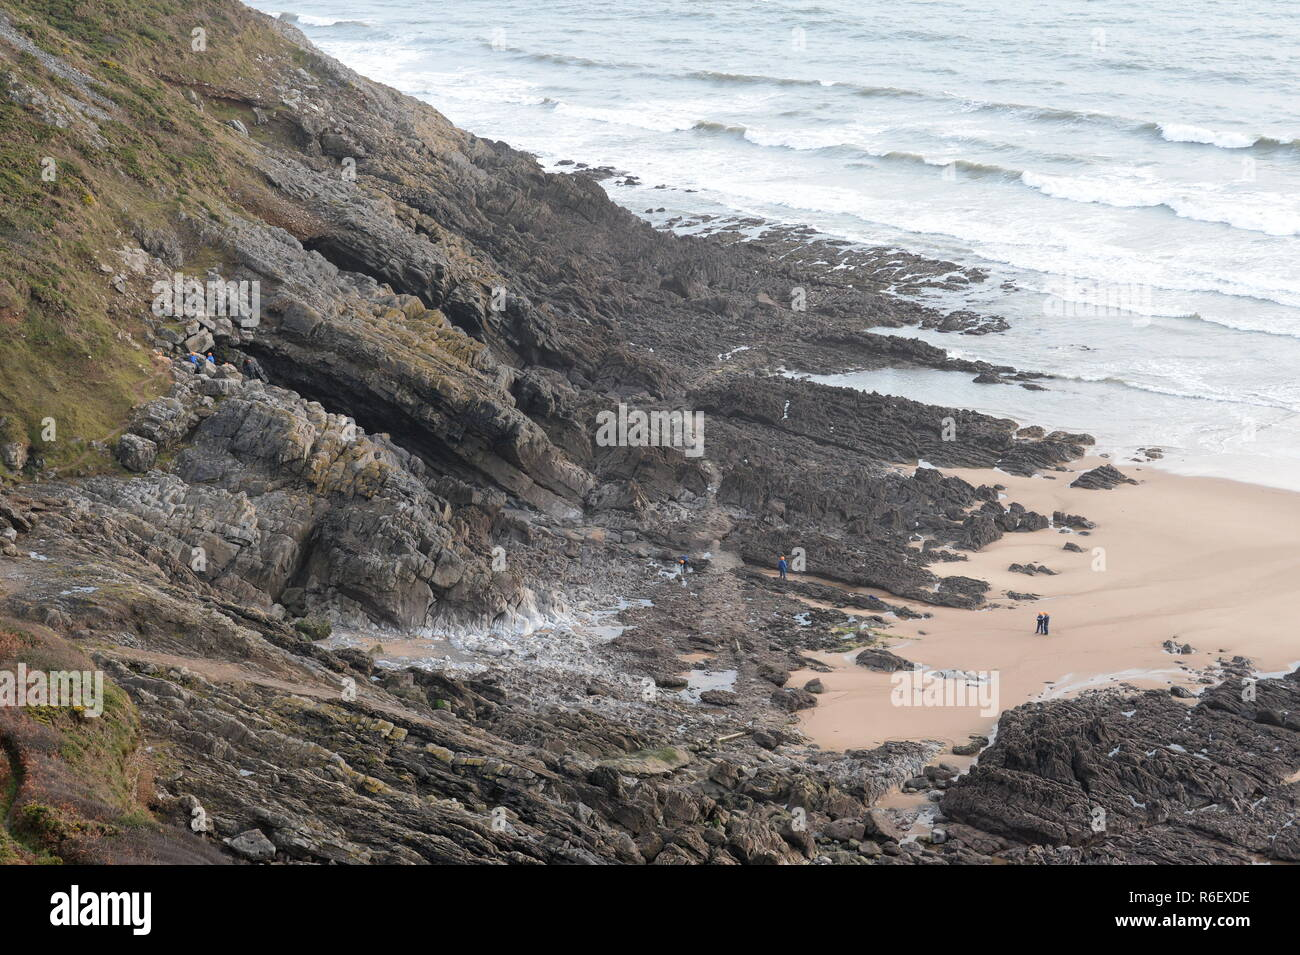 Geology students investigate one of the many cliffs and caves of the Gower at East Cliff ,High Tor, Southgate, Gower ,Wales Stock Photo